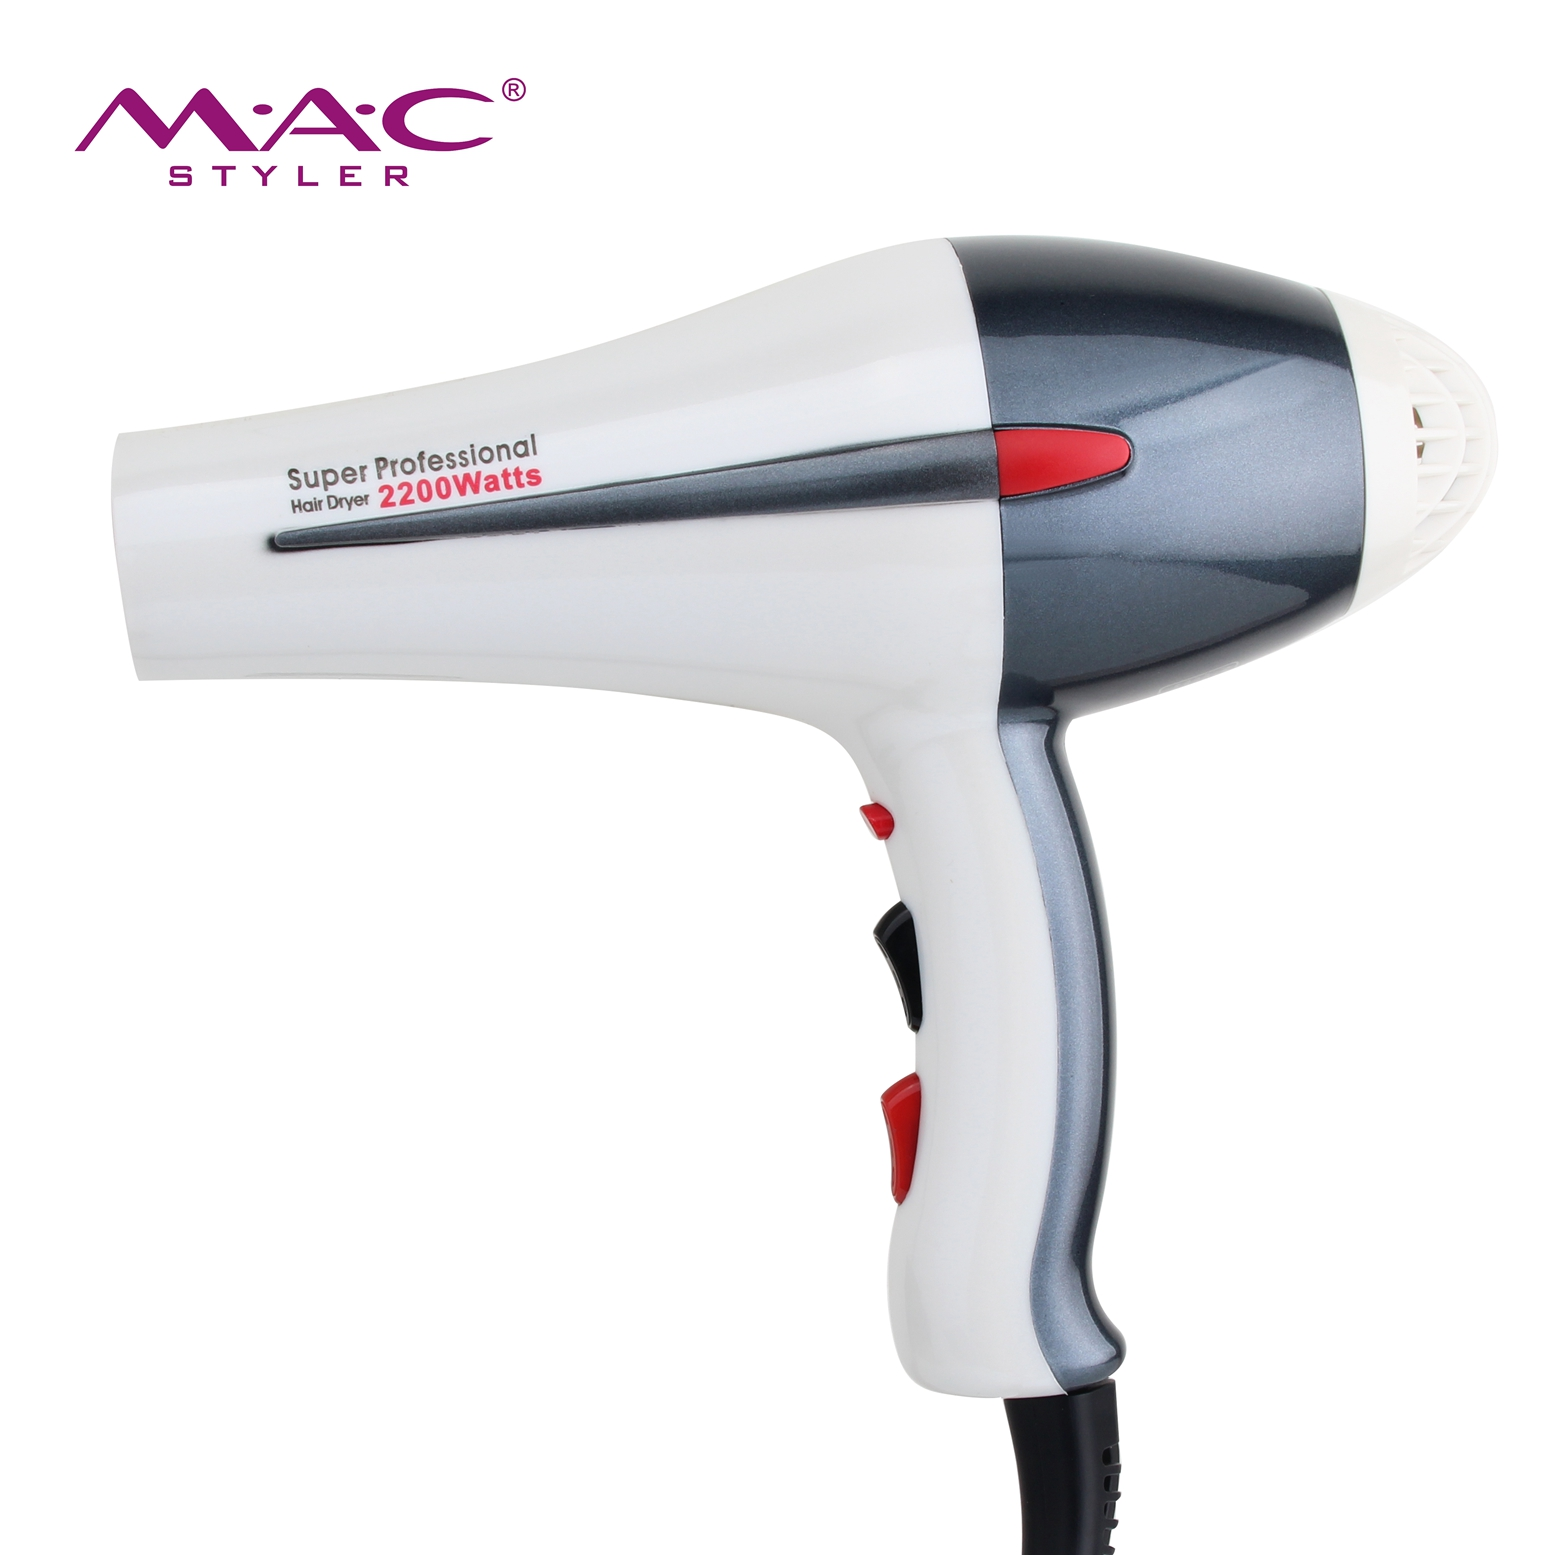 High Quality Power Household Professional Salon Wholesale Hair Dryer AC Motor Multi-function Home Travel Fashion Hair Dryer